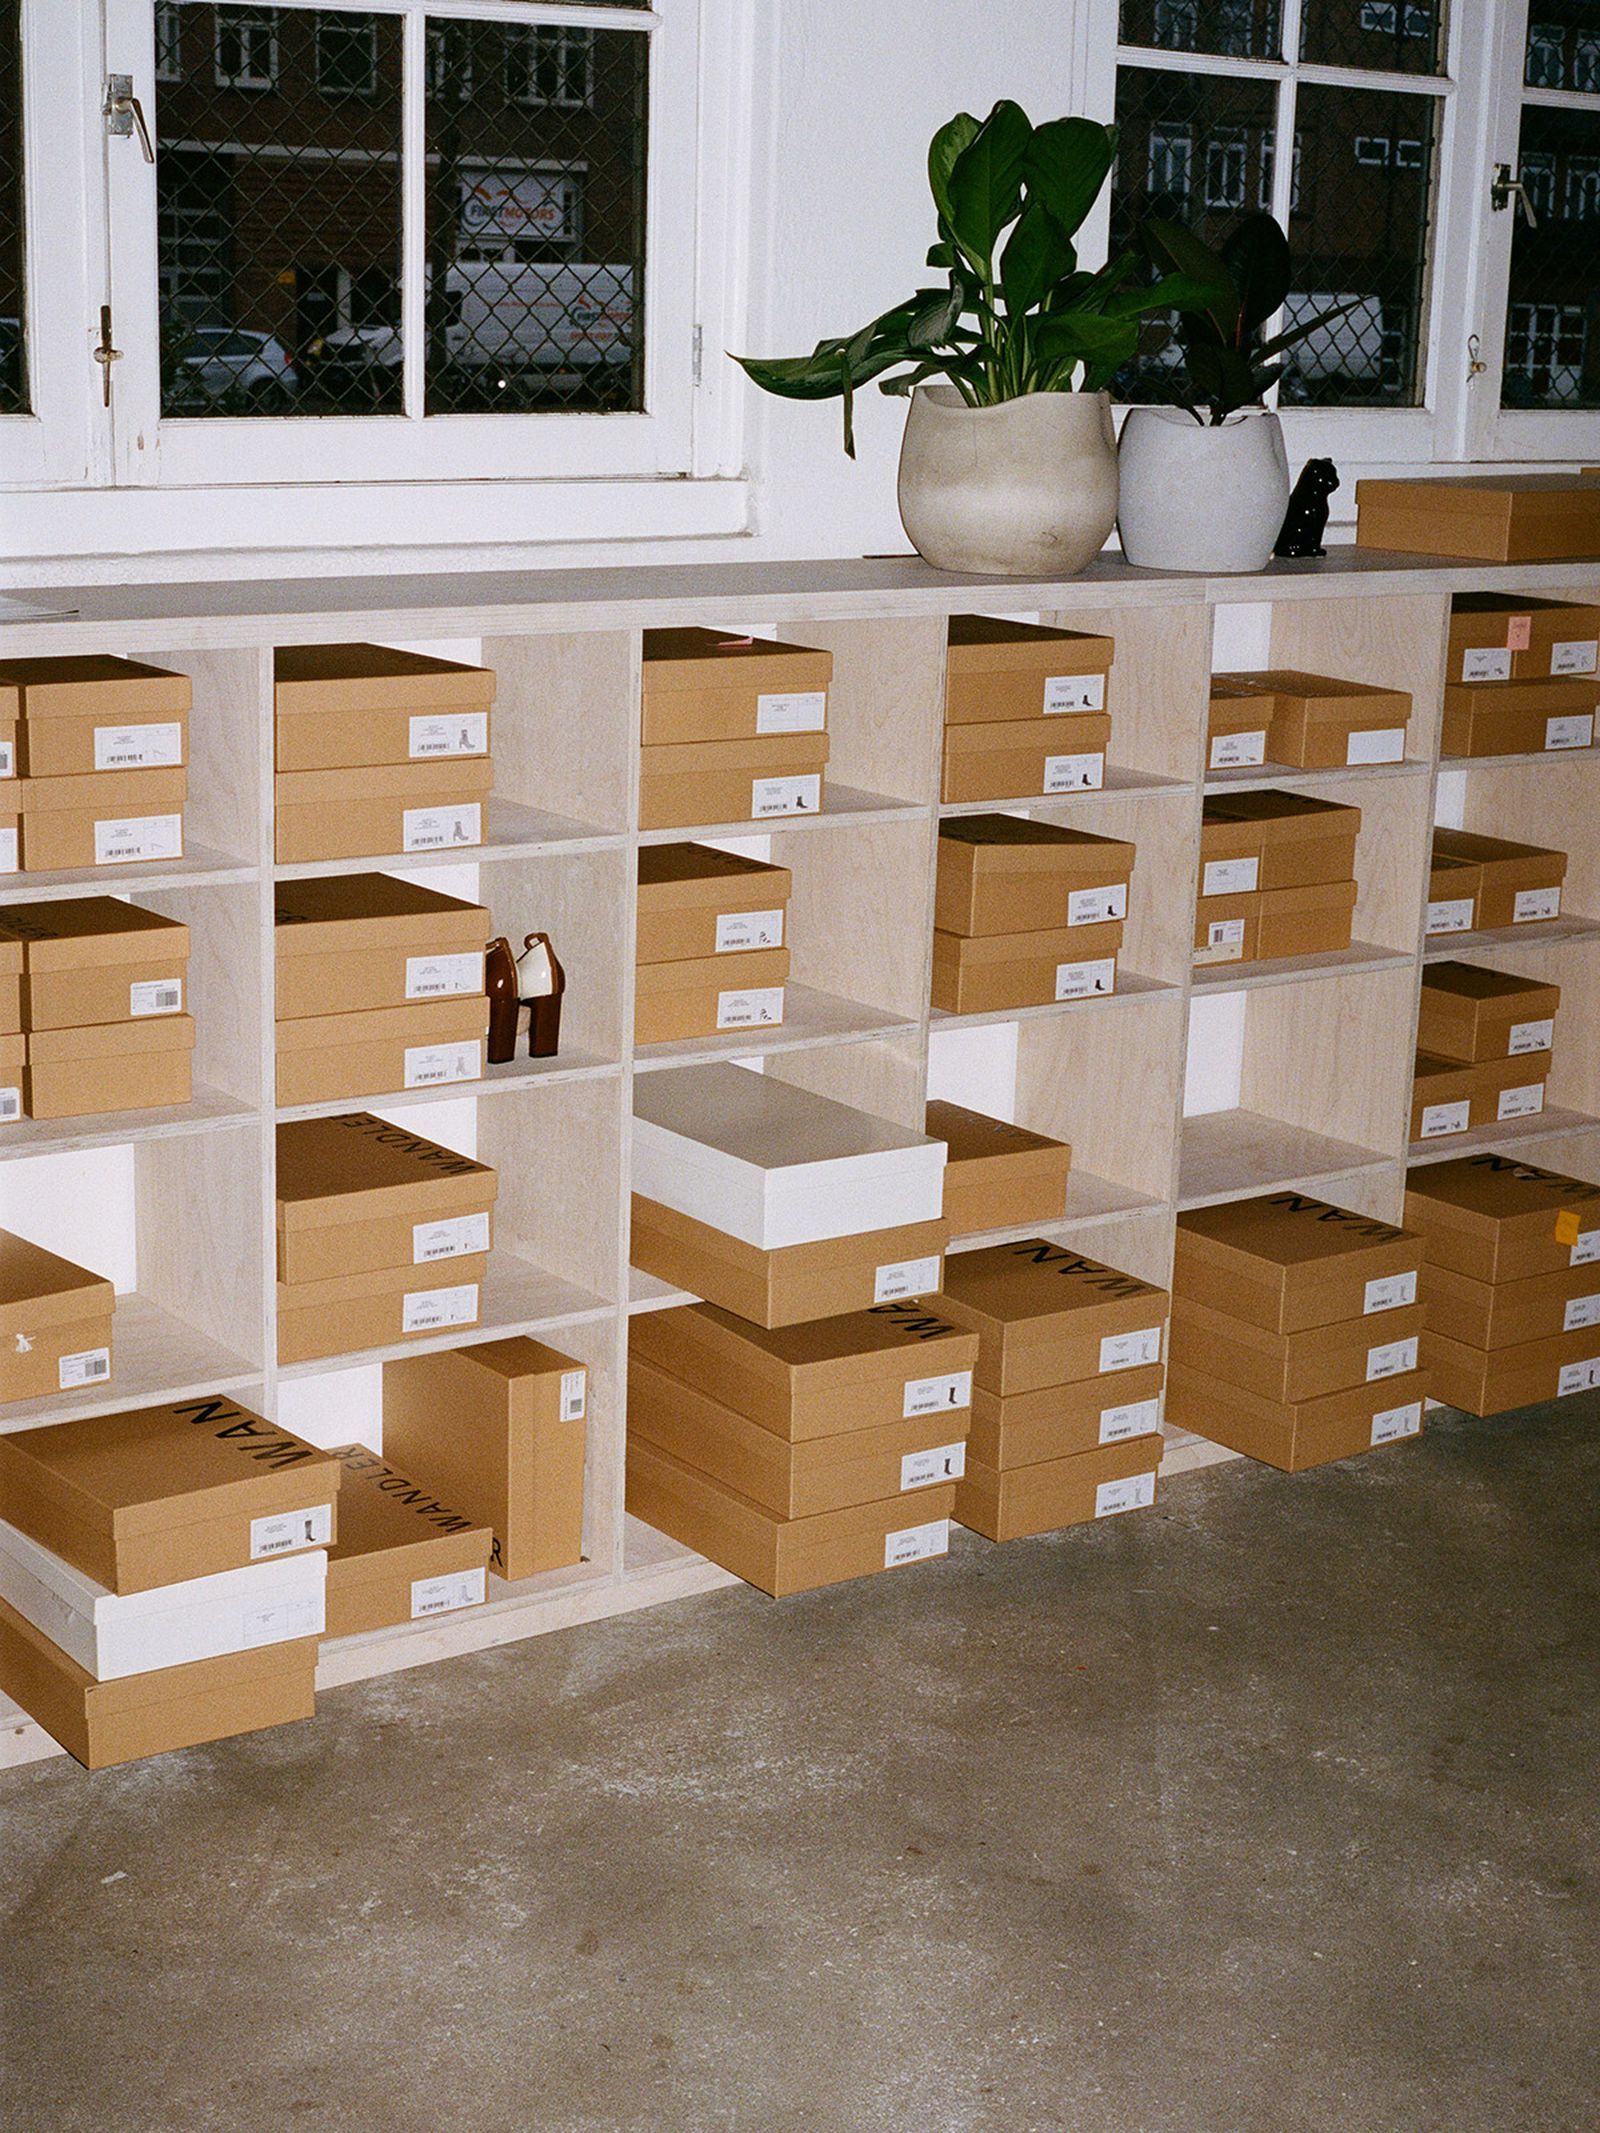 A selection of eco-friendly Wandler shoe boxes, made in the same factory as some of the world's biggest luxury houses.